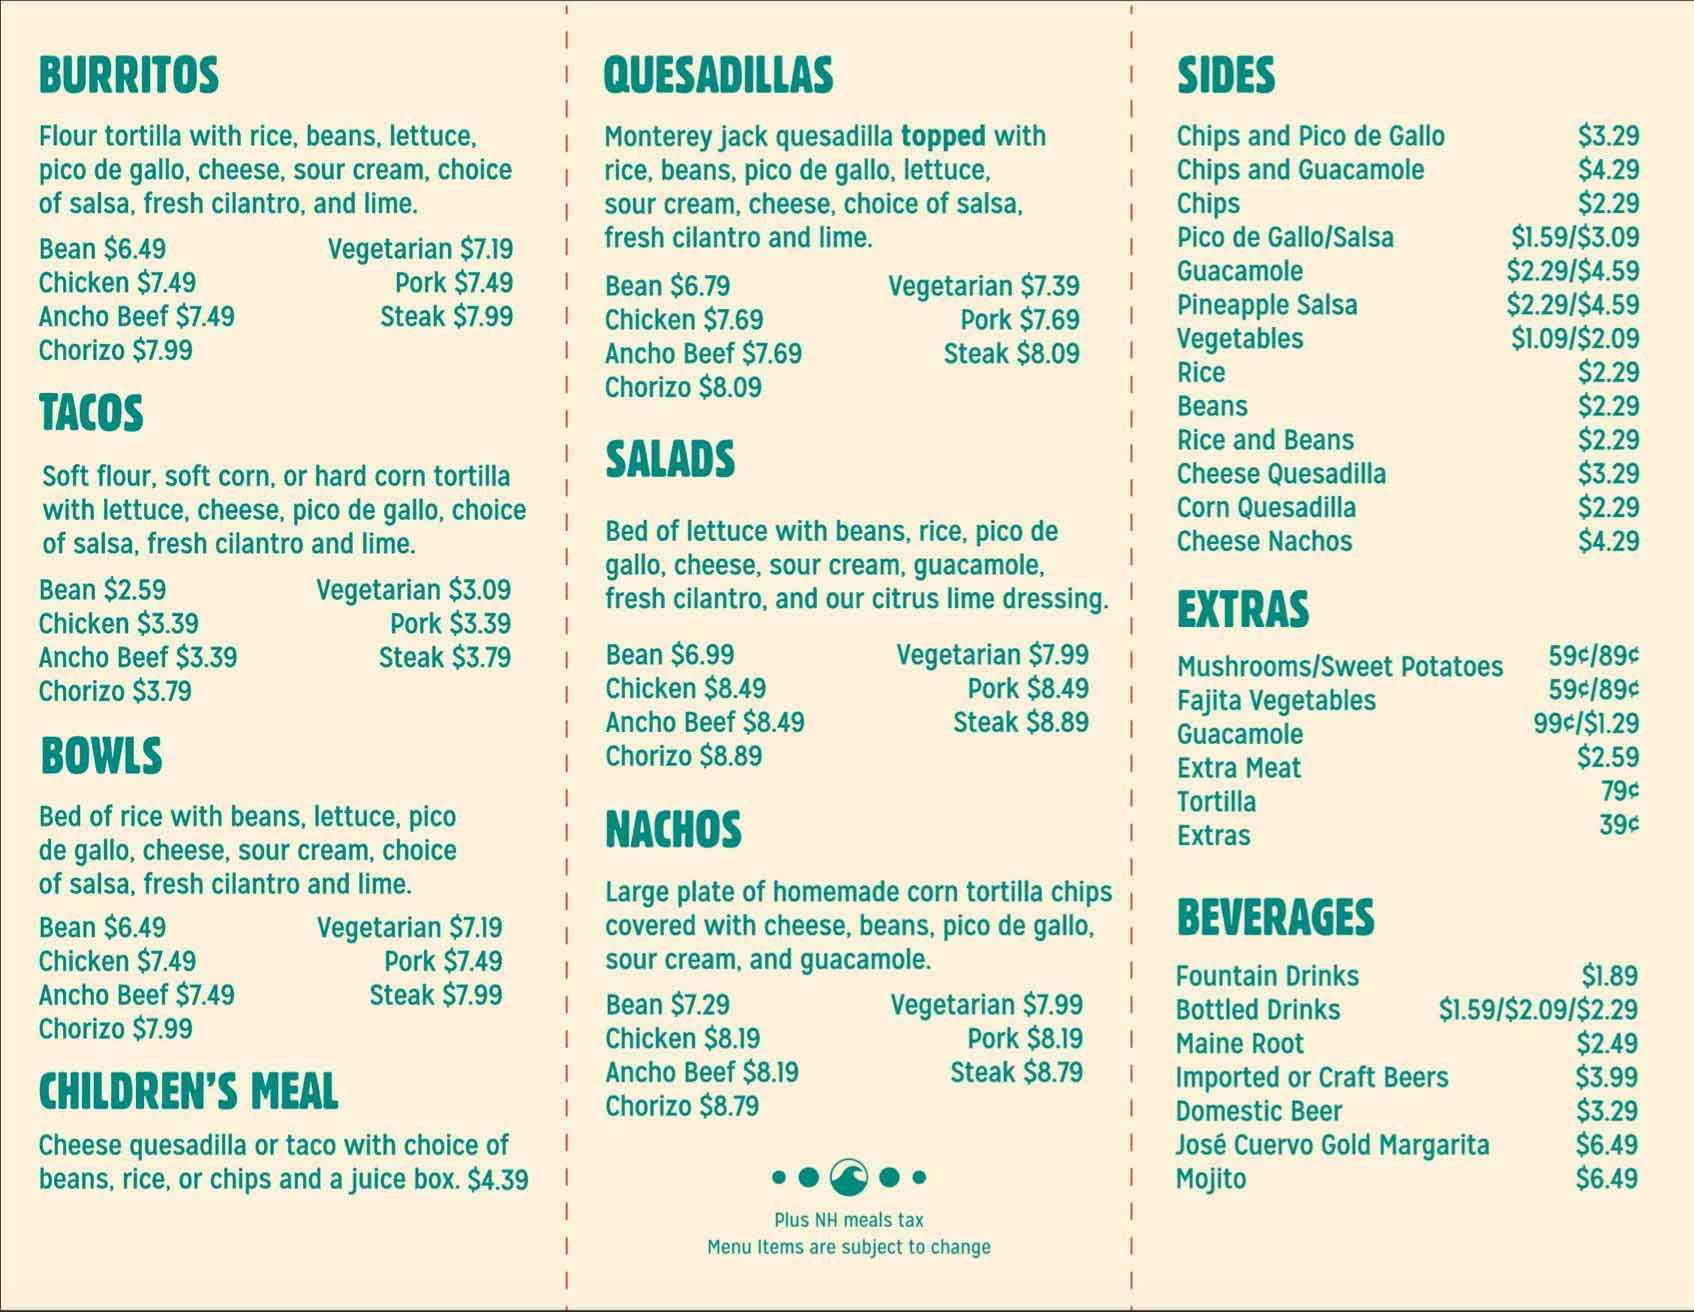 lasolas-taqueria-menu-jan-2017-2p2